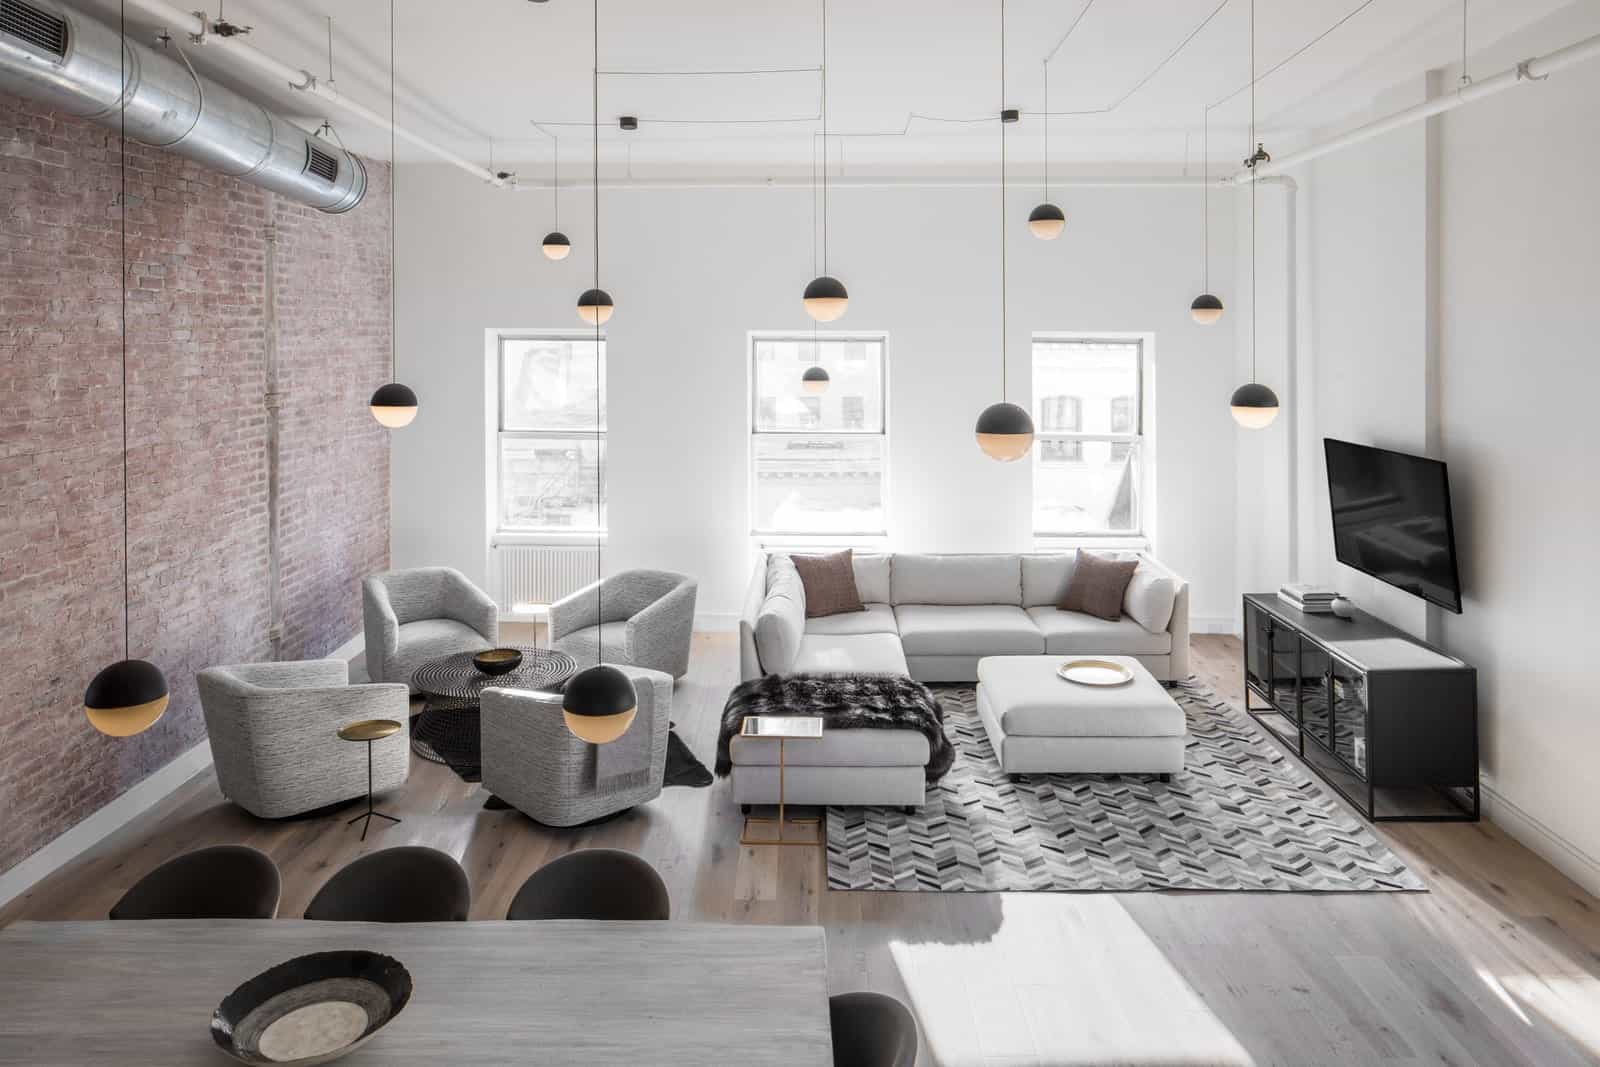 Industrial living space interior in Tribeca.